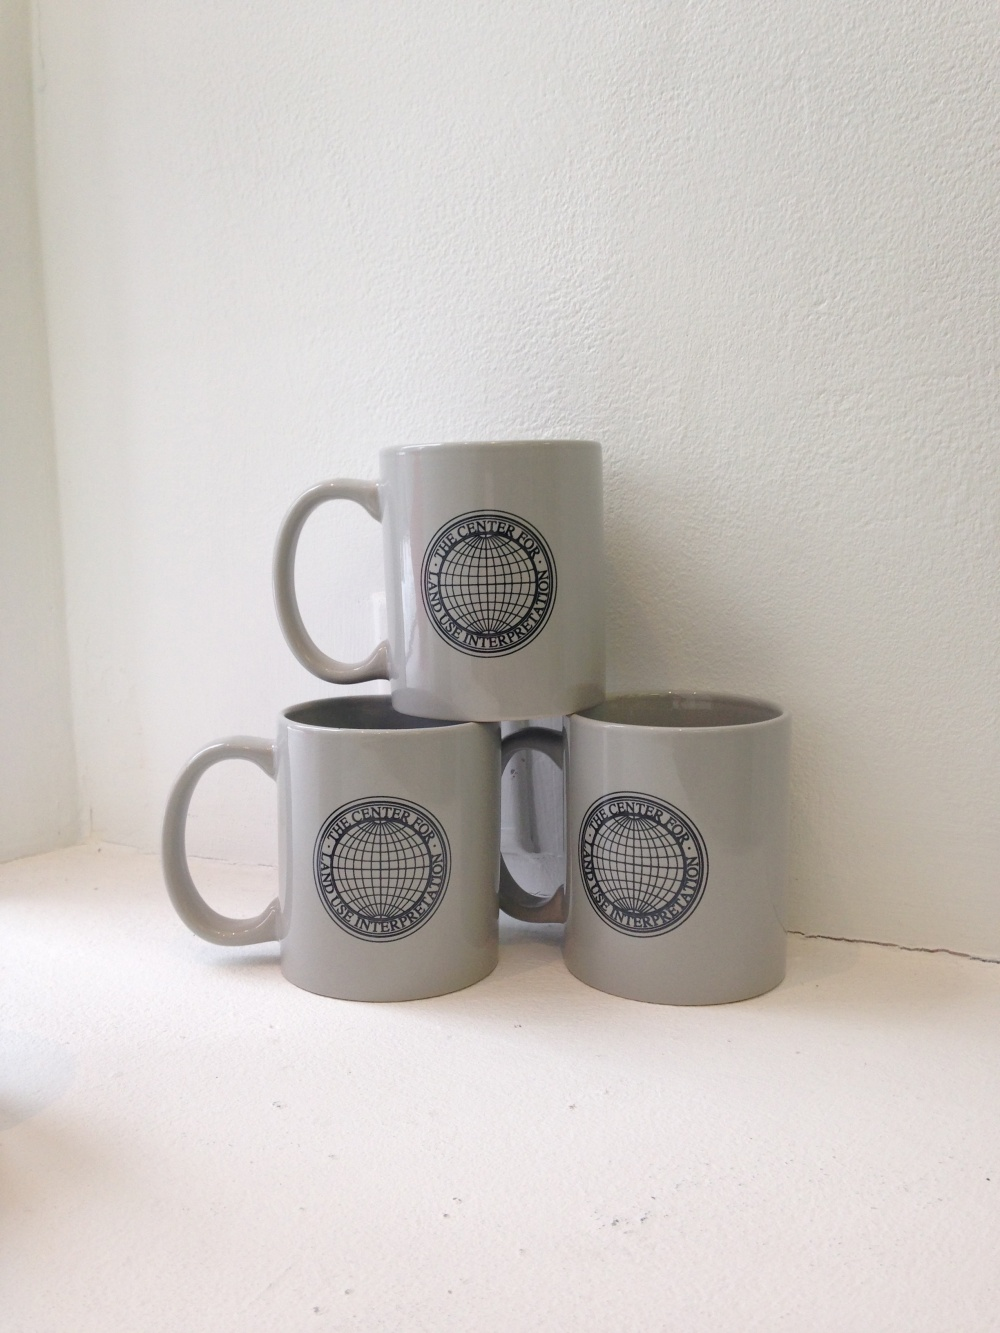 The Center for Land Use Interpretation Mug